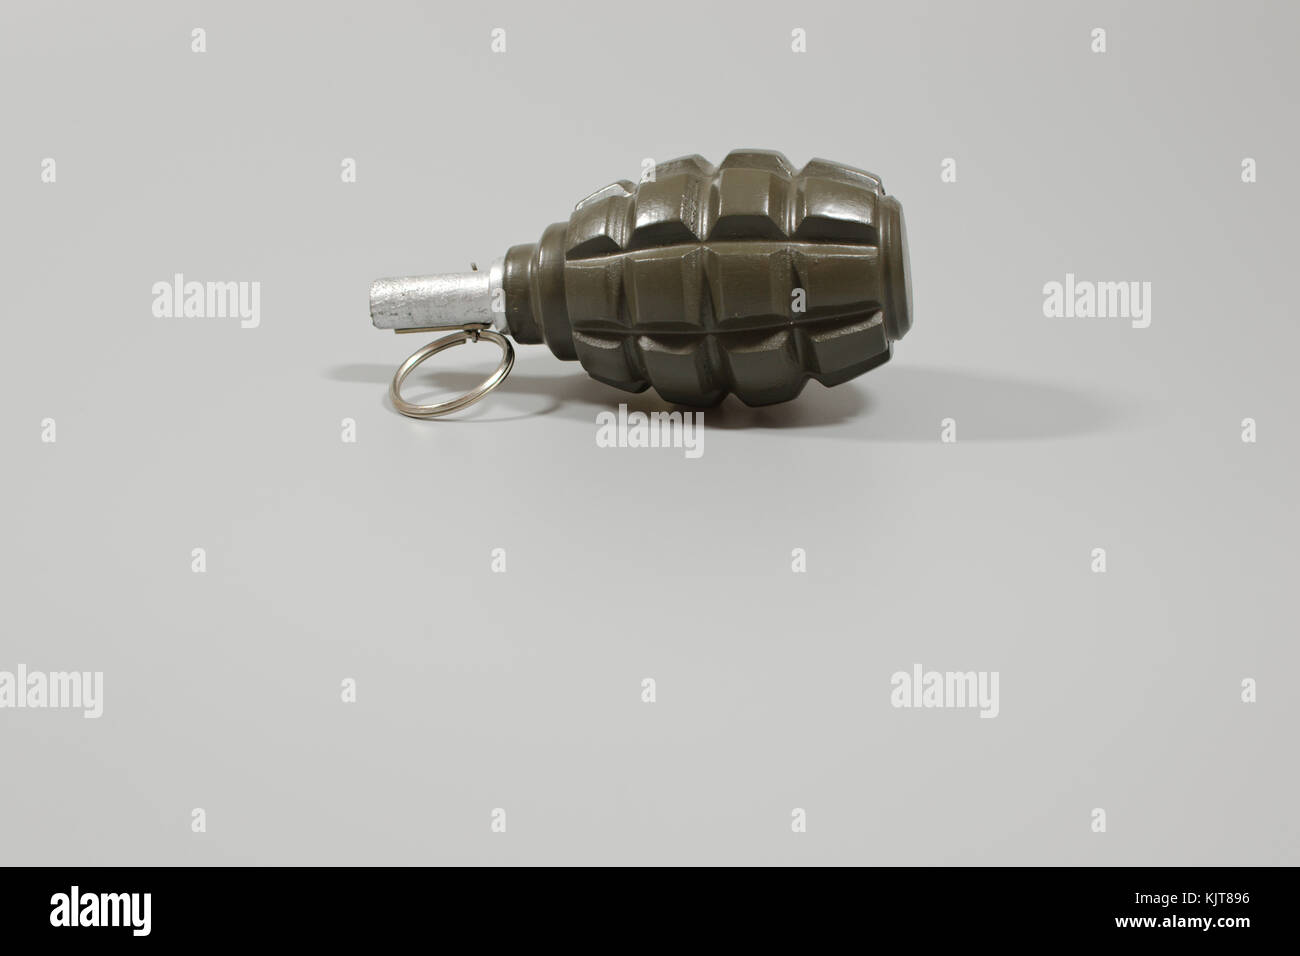 A hand grenade with copy space left for text. - Stock Image